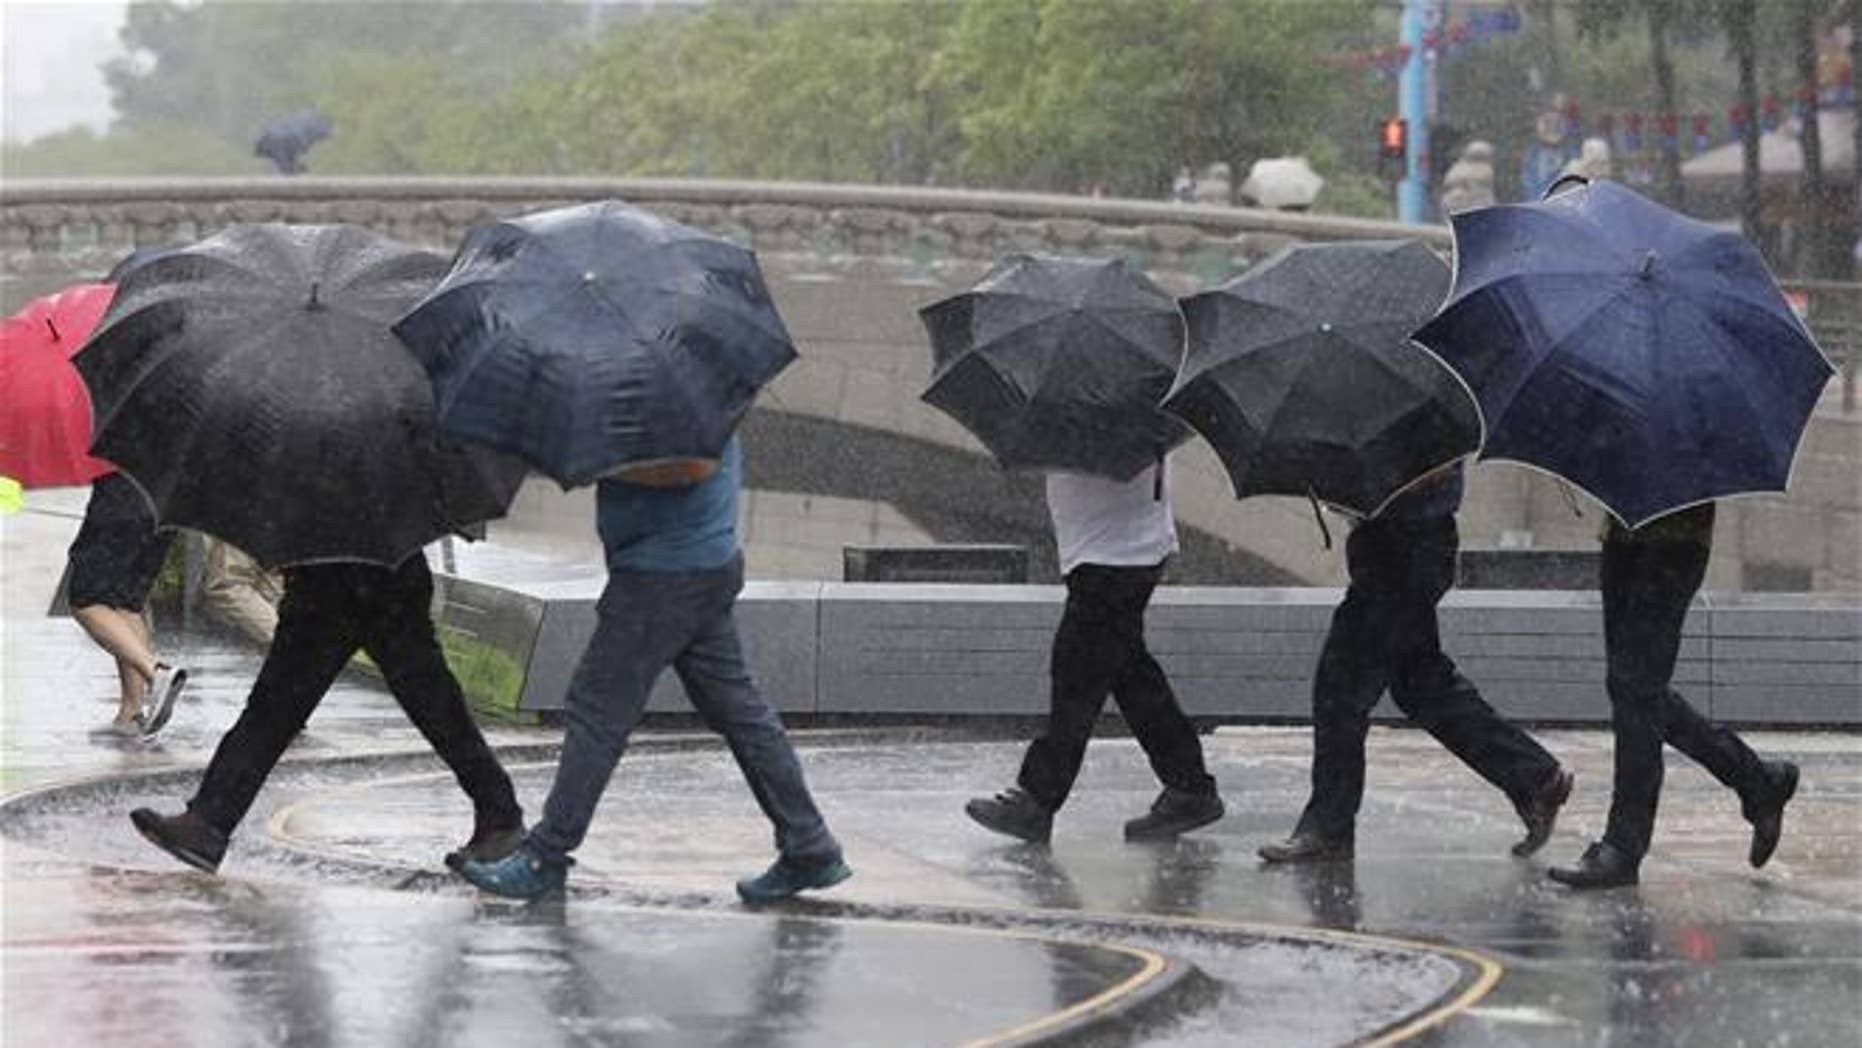 People hold umbrellas in the rain.